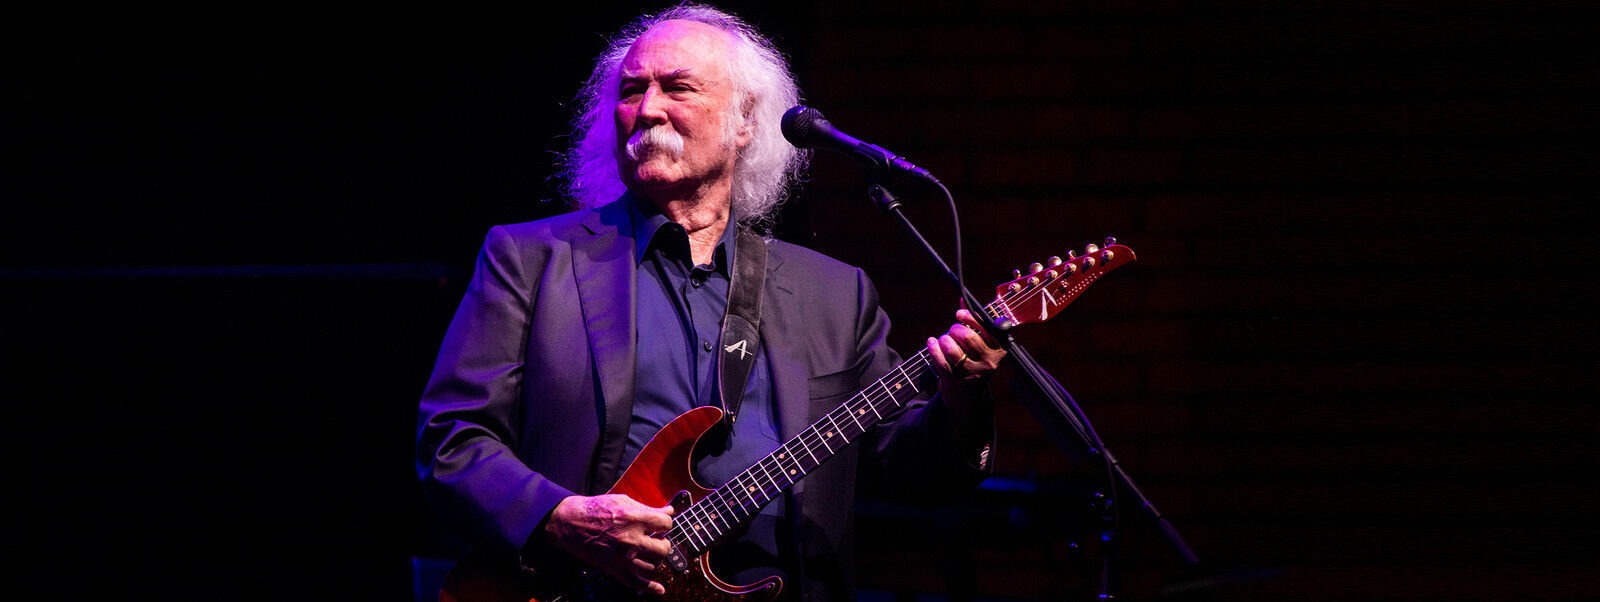 David Crosby and Friends Tickets (16+ Event)